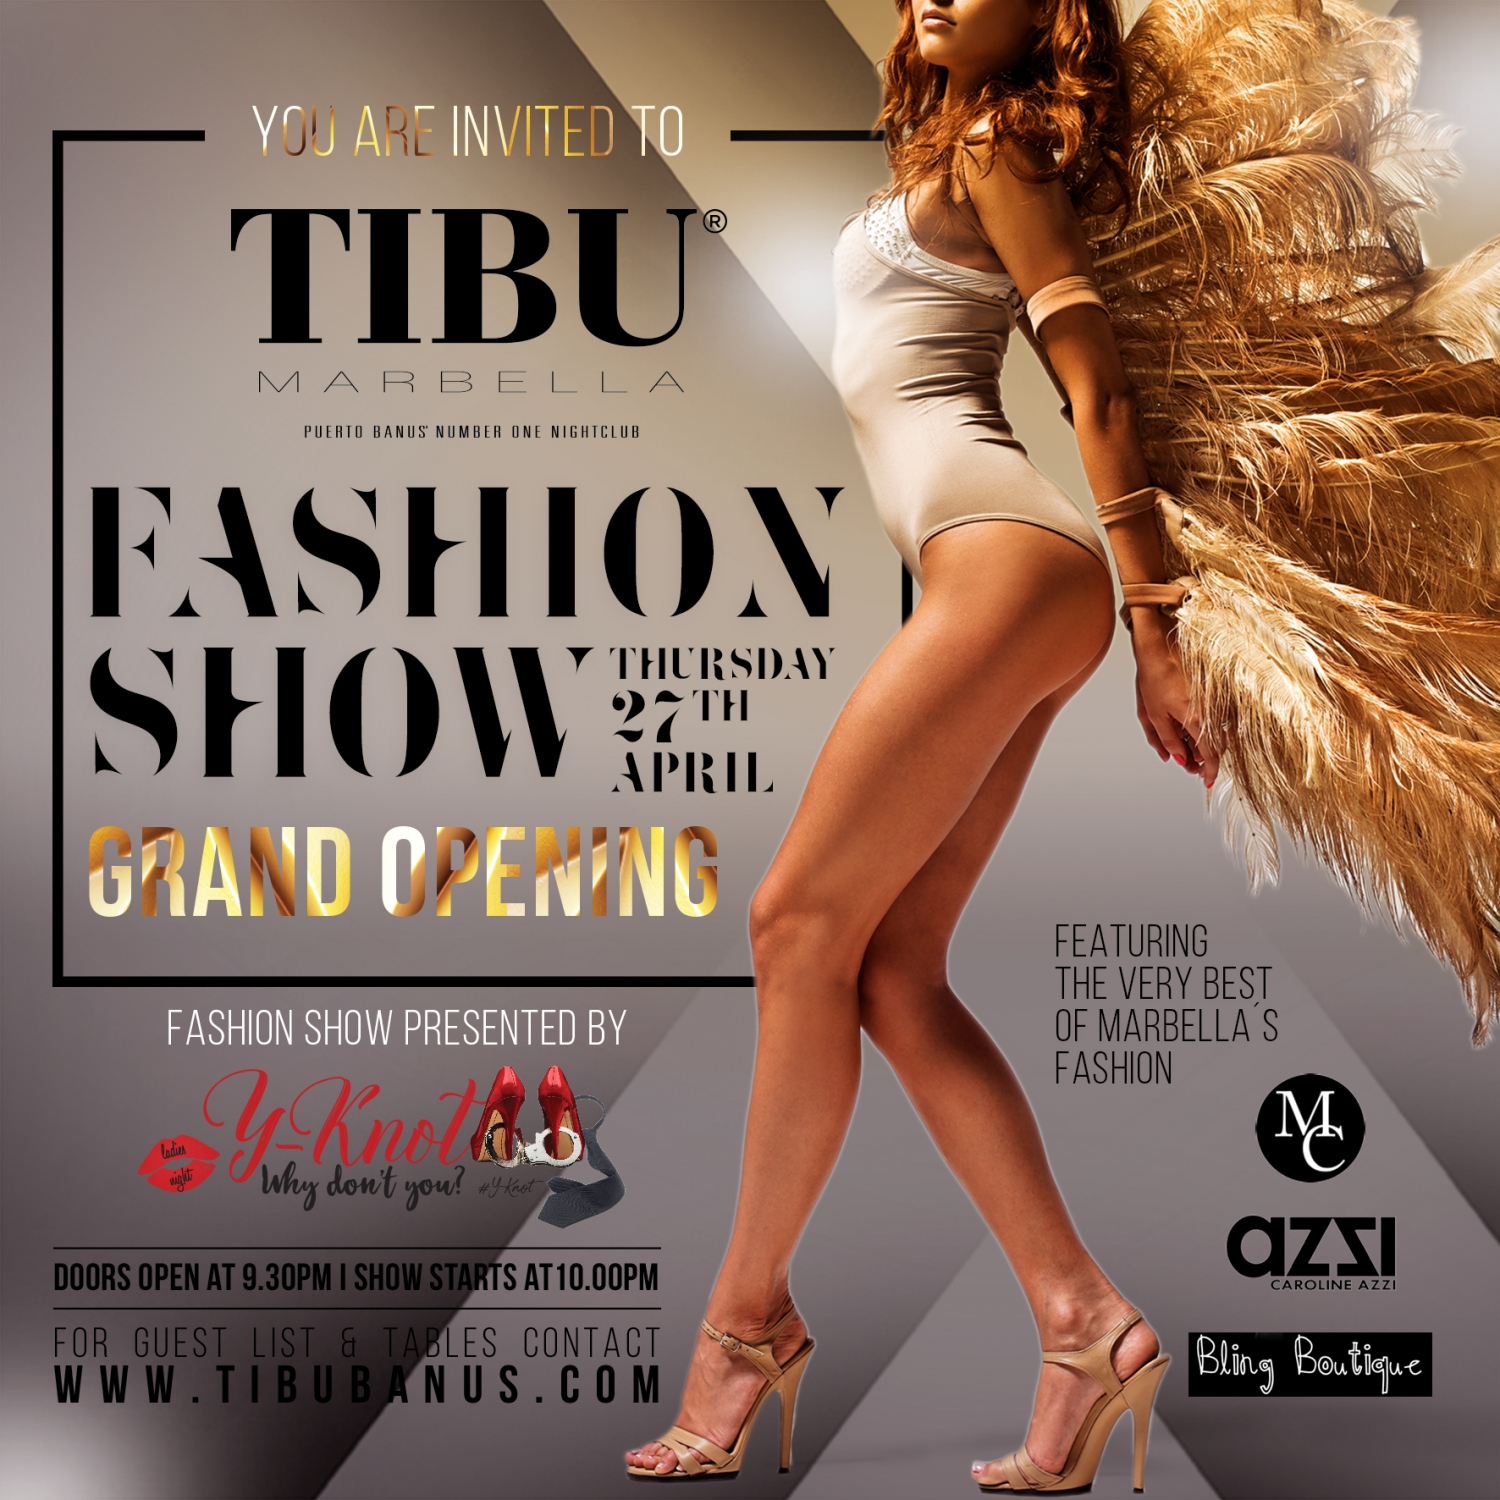 Fashion Show at Tibu Banus